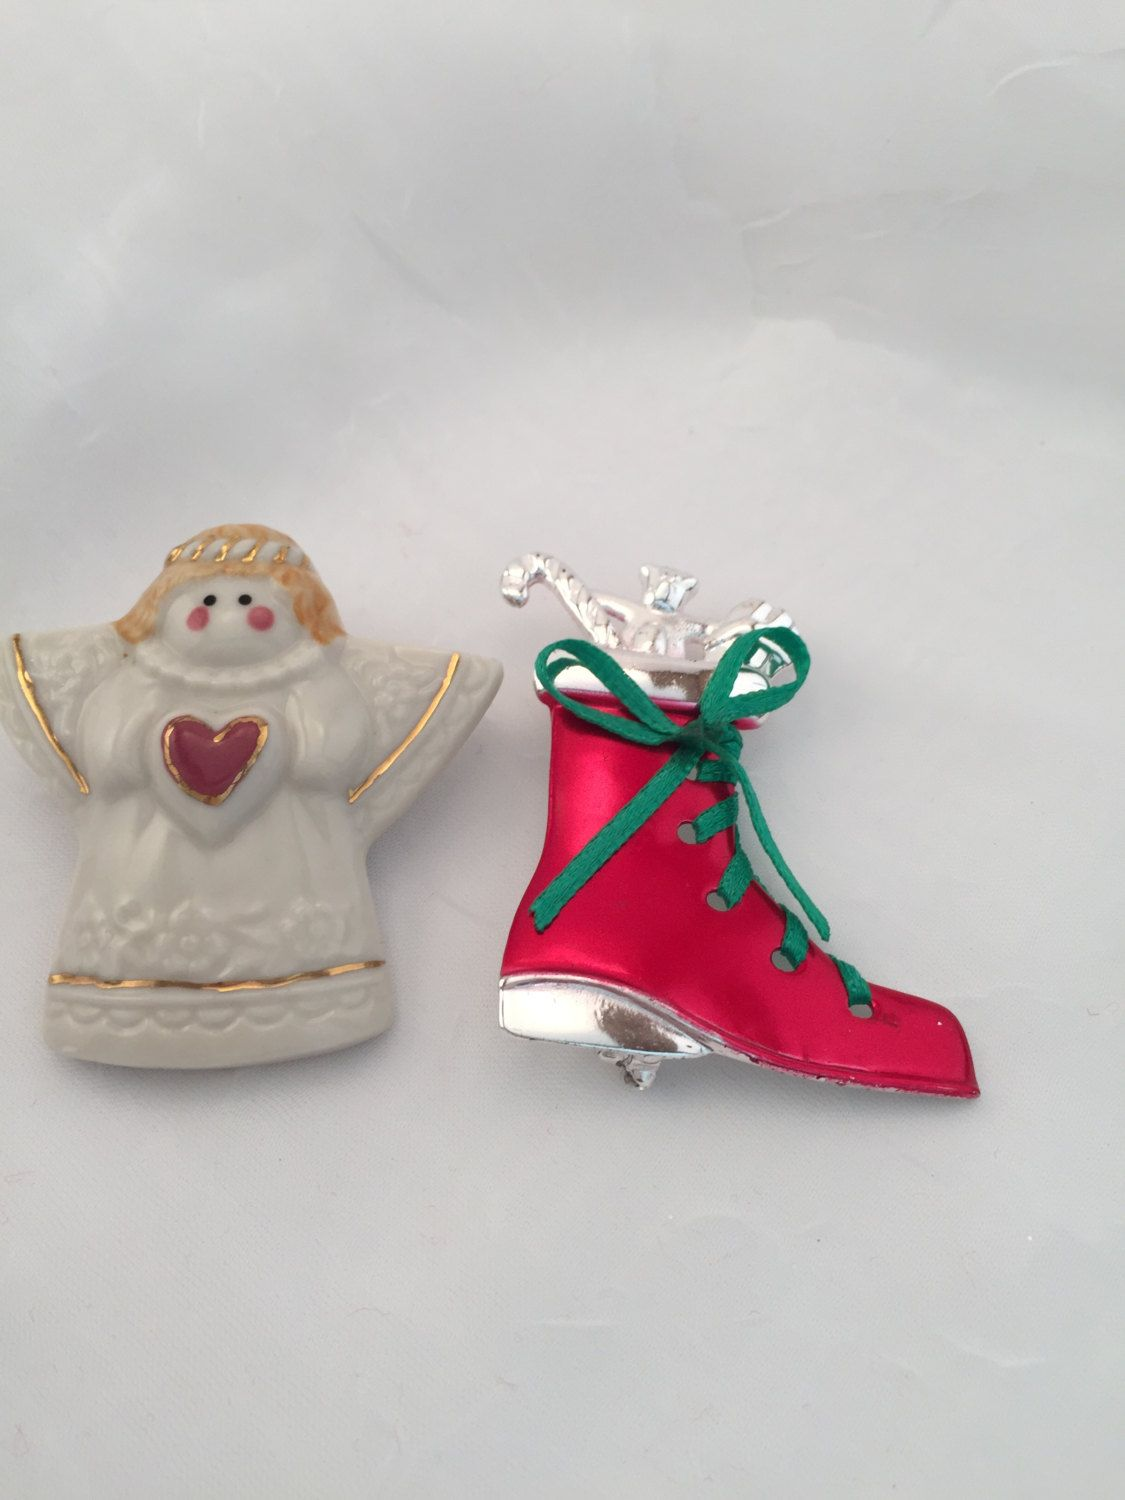 Lot of 2 pins, Holiday Angel, Christmas Boot, Christmas pins, holiday pins, cute pins for the holidays, holiday sweater pin, Christmas by Culturewares on Etsy